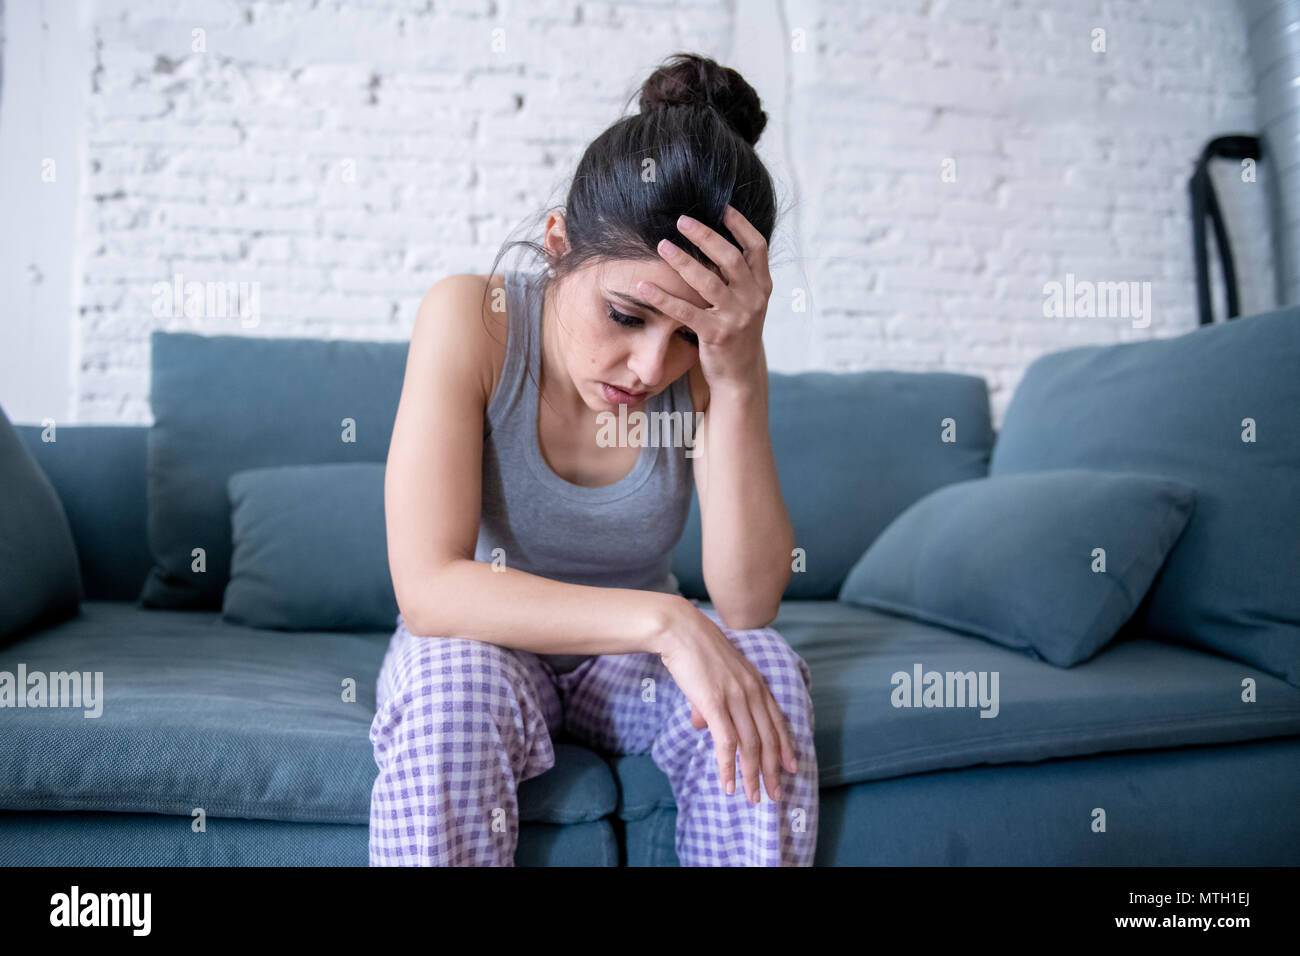 Beautiful latin depressed lonely woman staring out feeling sad, pain, grief at home on her sofa. Crisis, depression and mental health concept - Stock Image